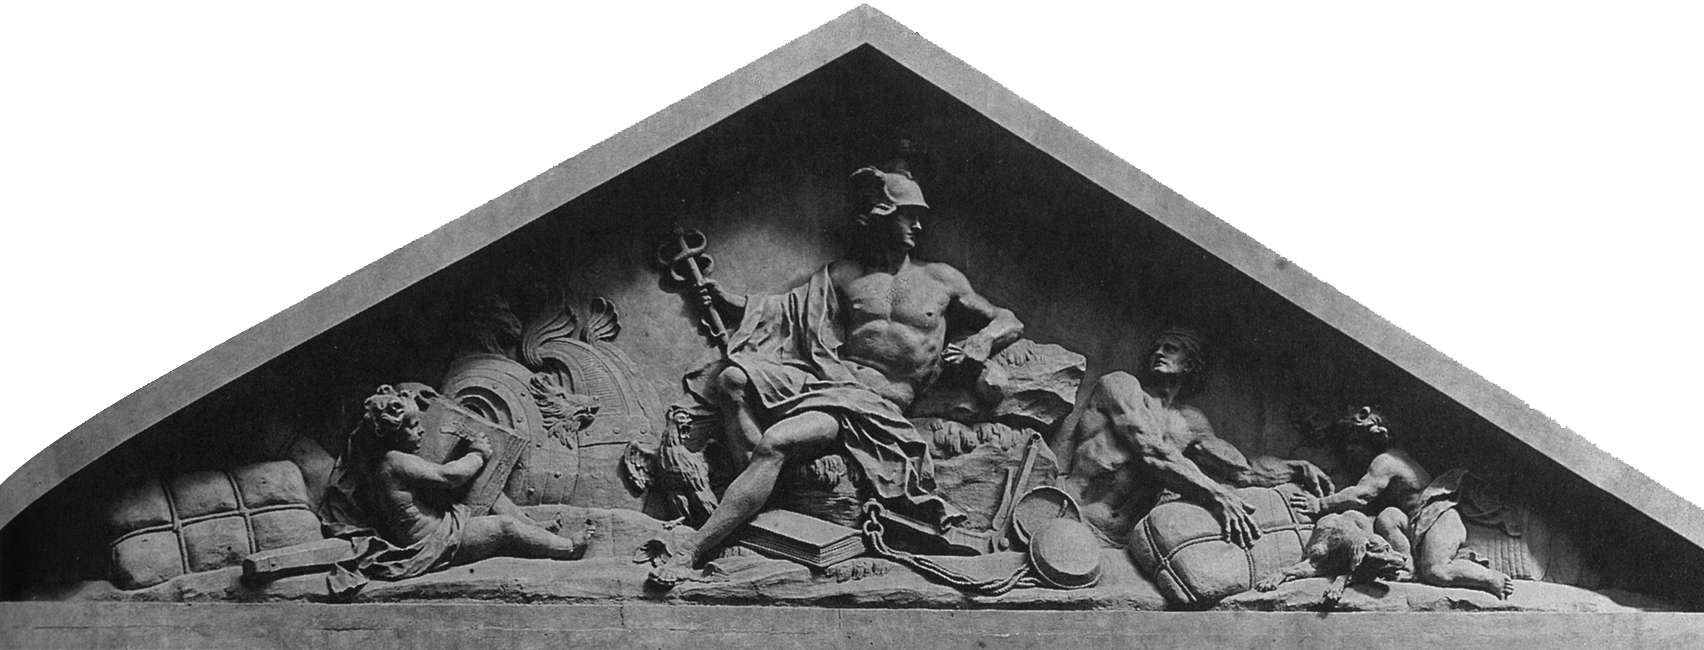 Pediment of the Custom House